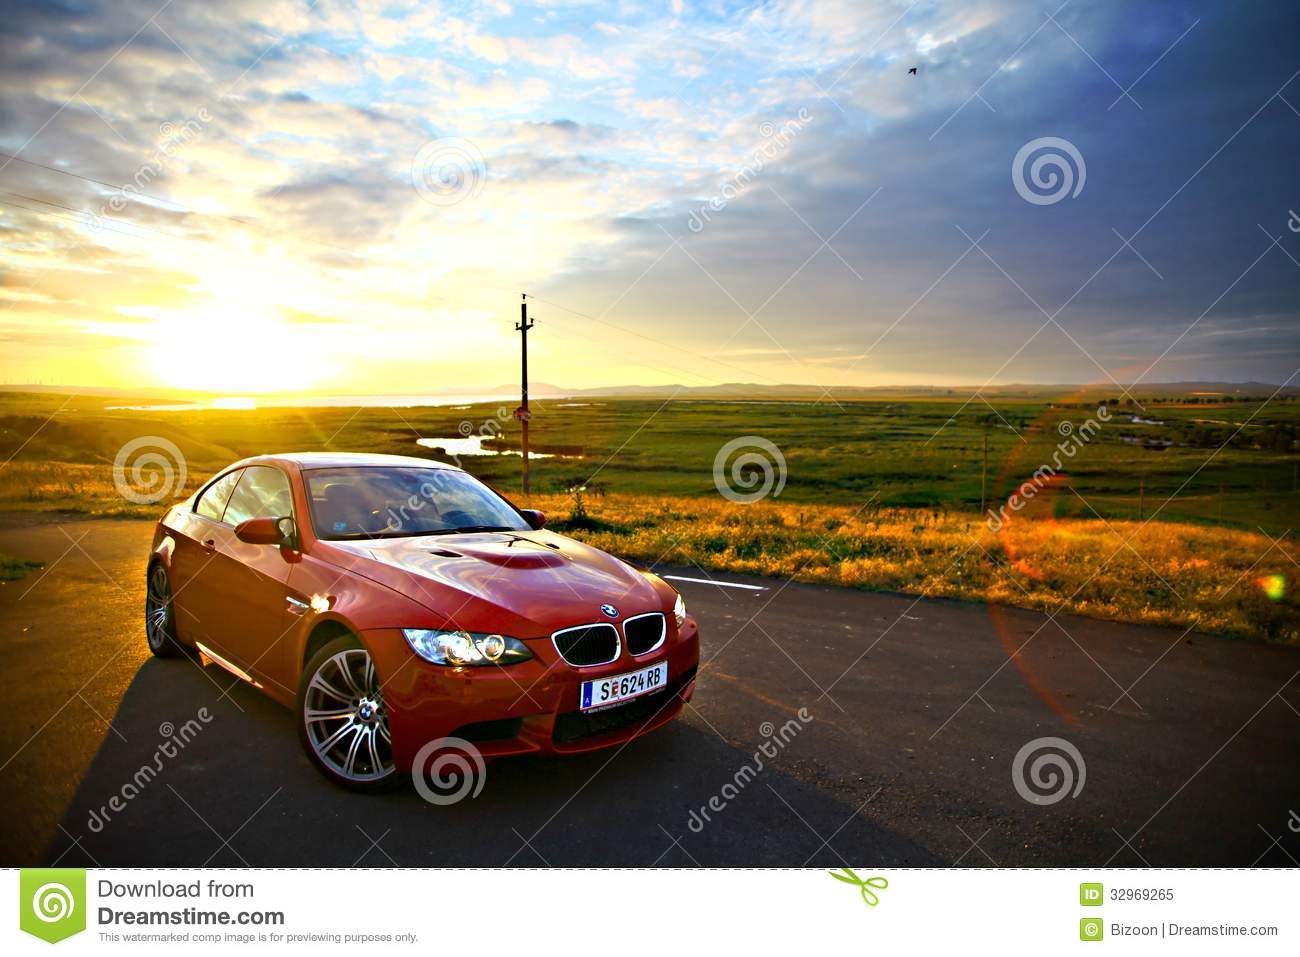 Bmw M3 Editorial Image Image Of Landscape Outdoor